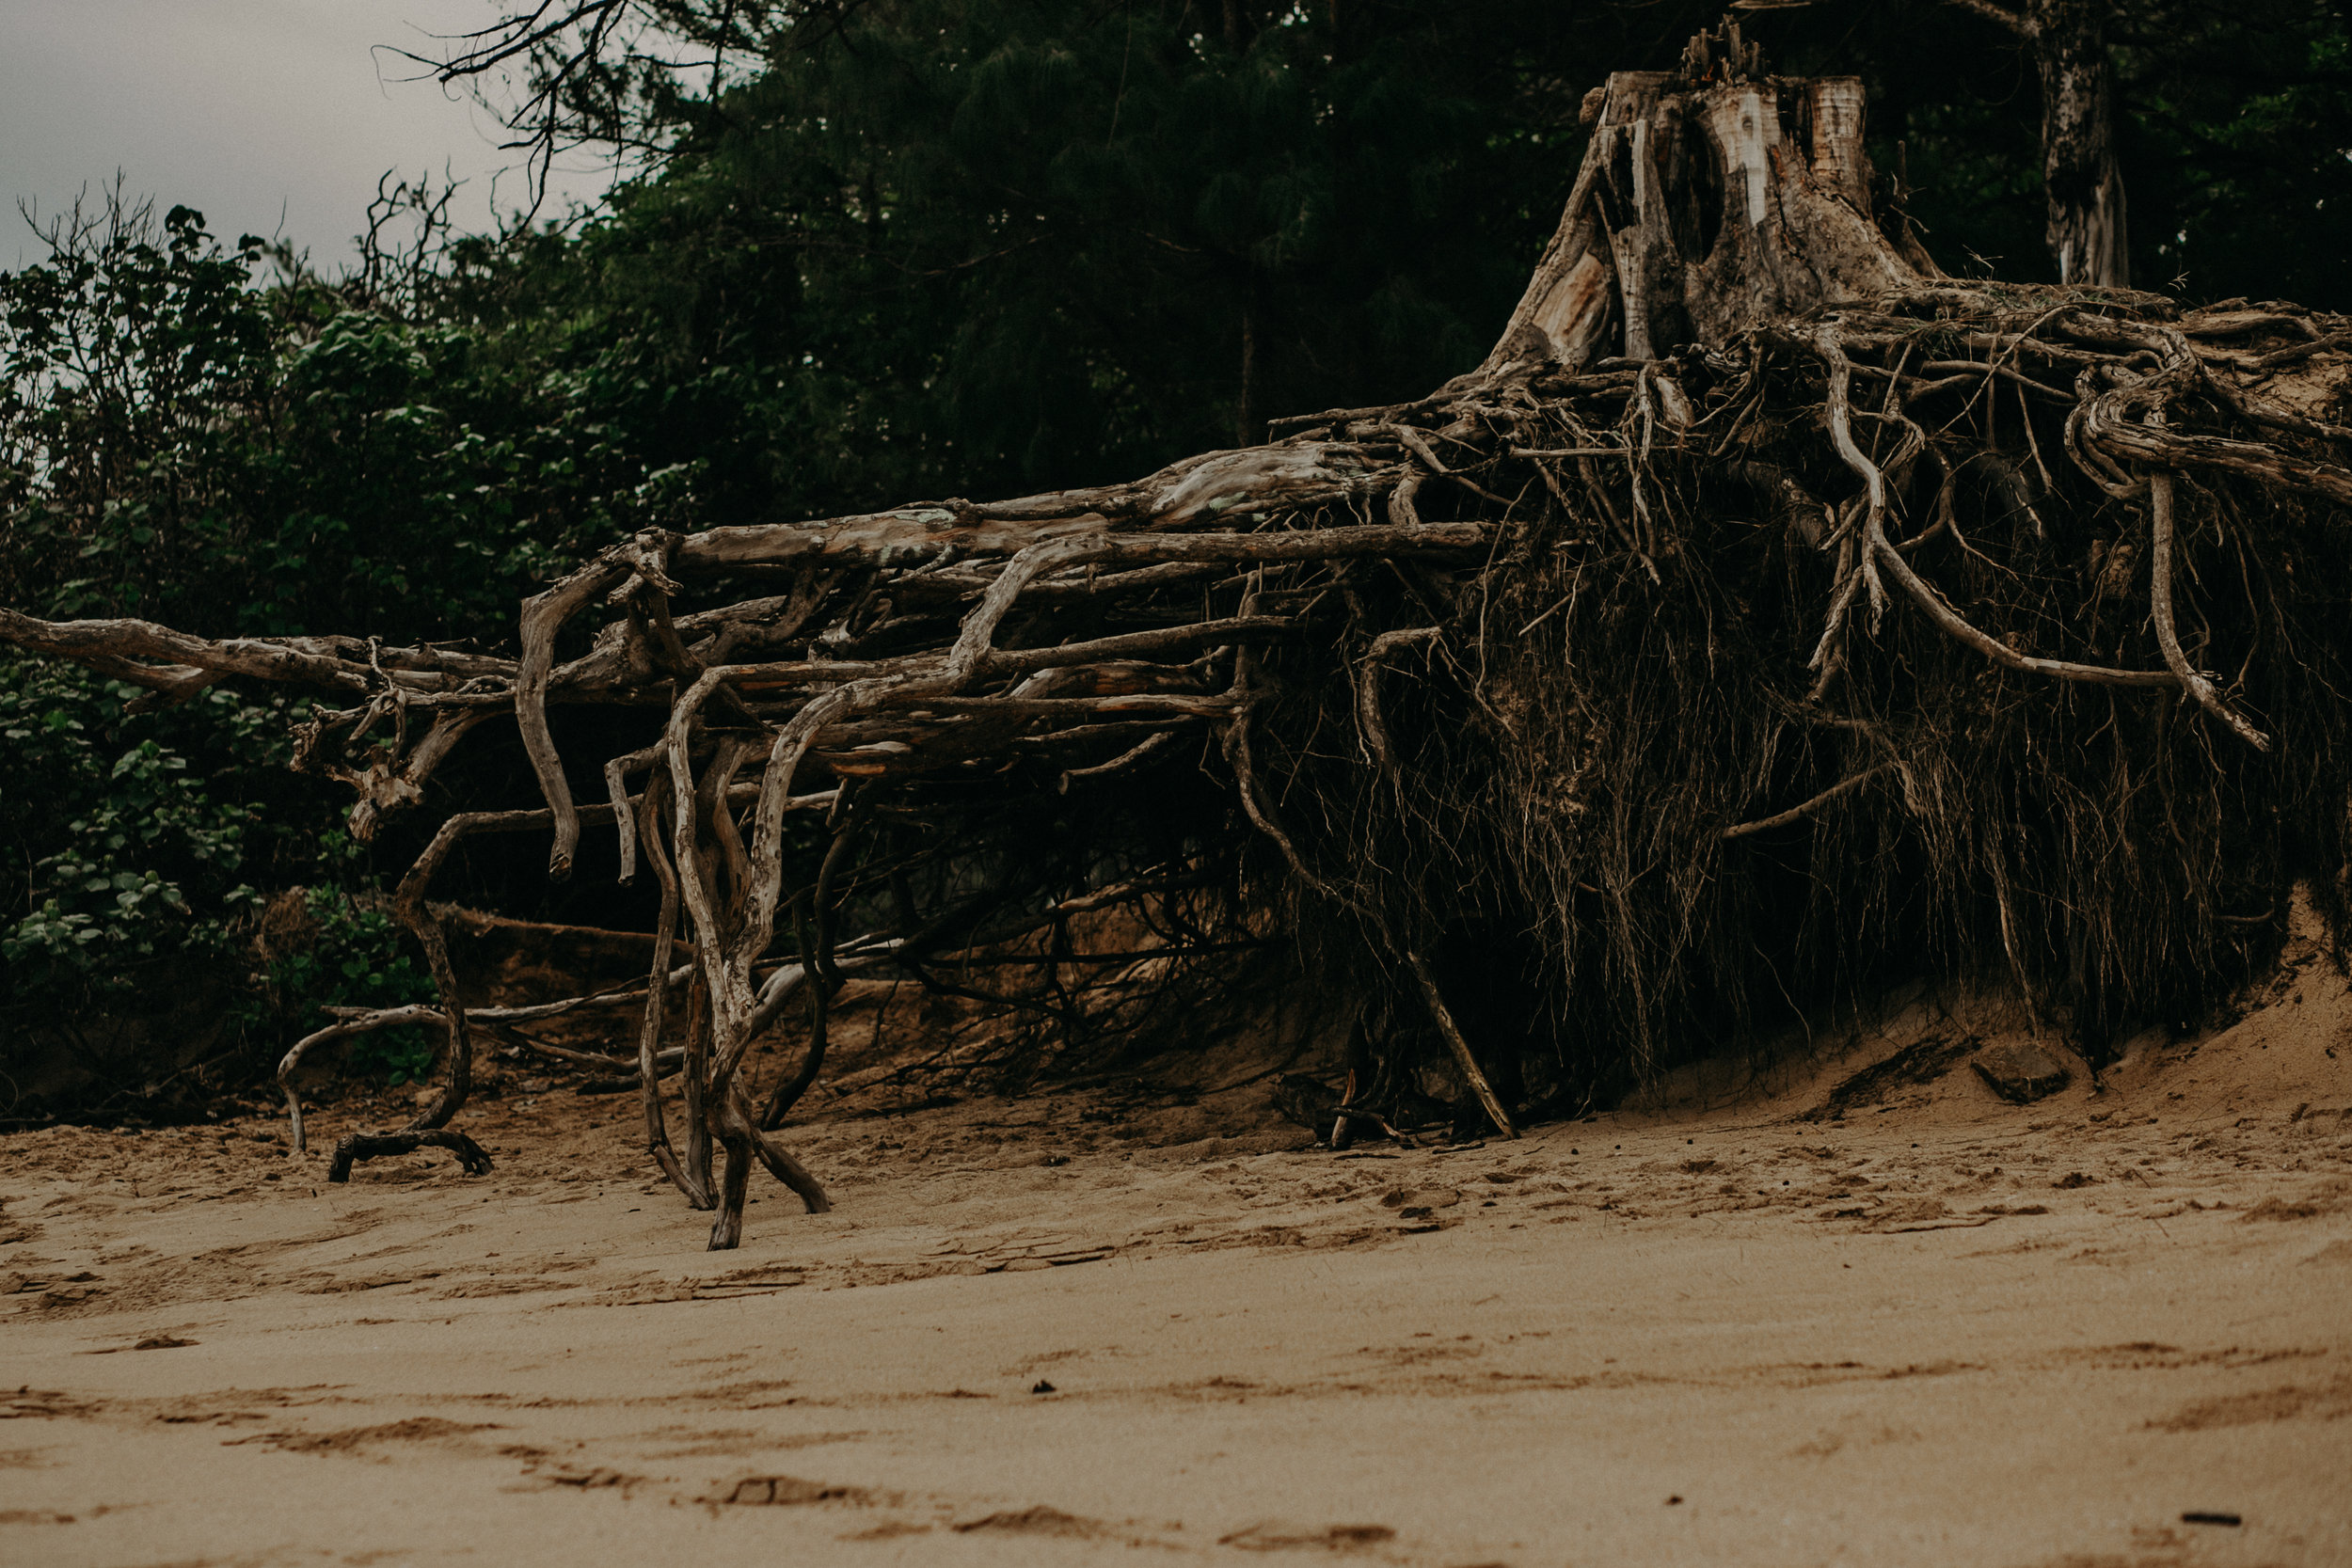 crazy tree roots growing on Secret Beach in Paia on Maui Hawaii